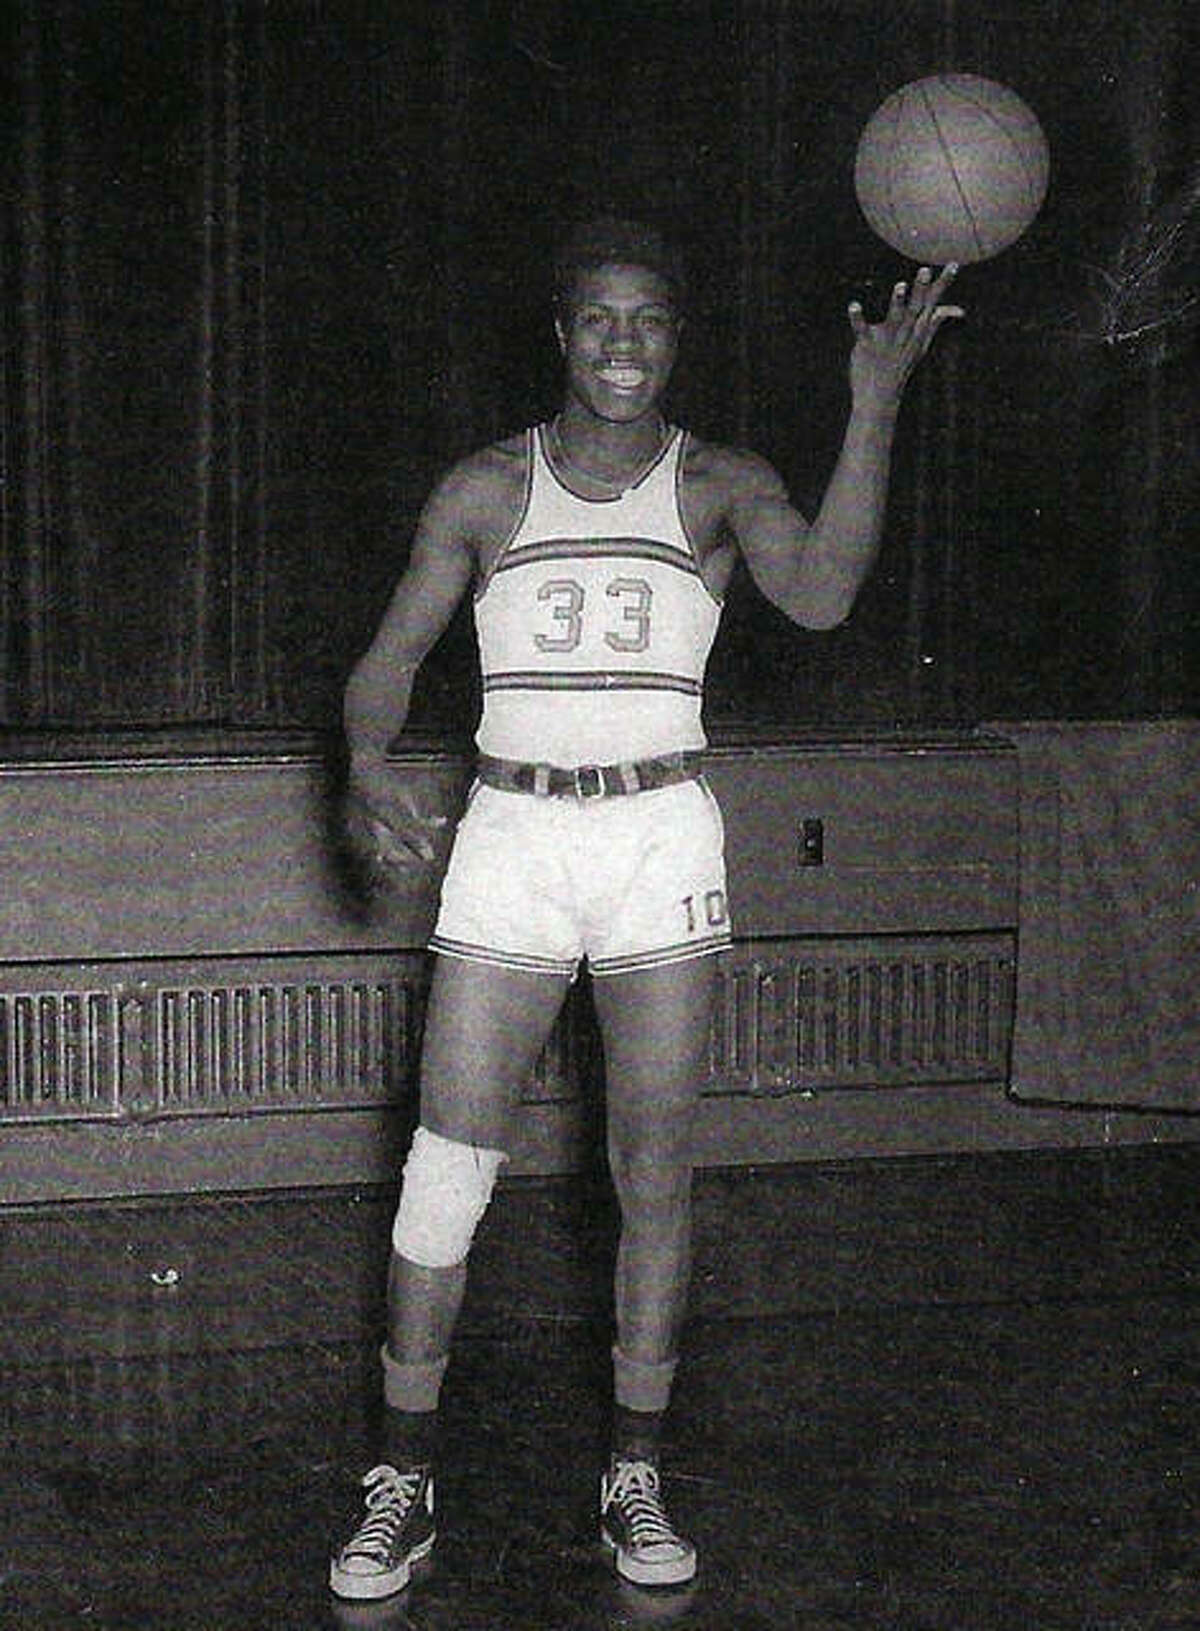 Herman Shaw as a basketball player at Edwardsville High School.